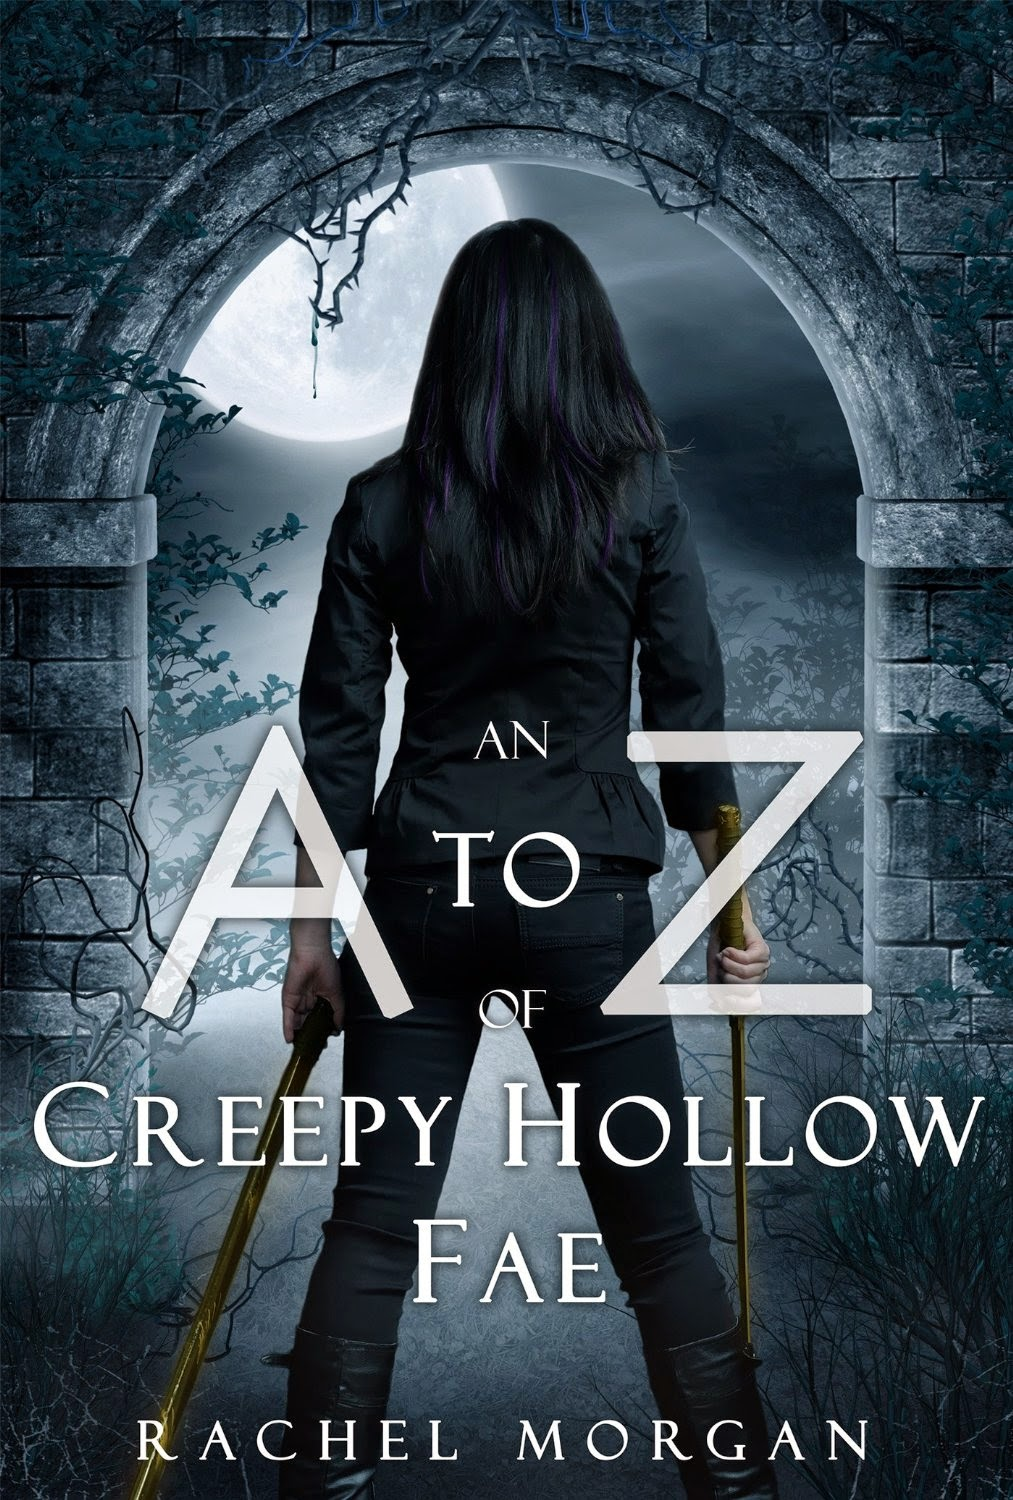 http://www.amazon.com/Z-Creepy-Hollow-Fae-ebook/dp/B009QOLFDM/ref=la_B007G2WX8M_1_6?s=books&ie=UTF8&qid=1400152568&sr=1-6